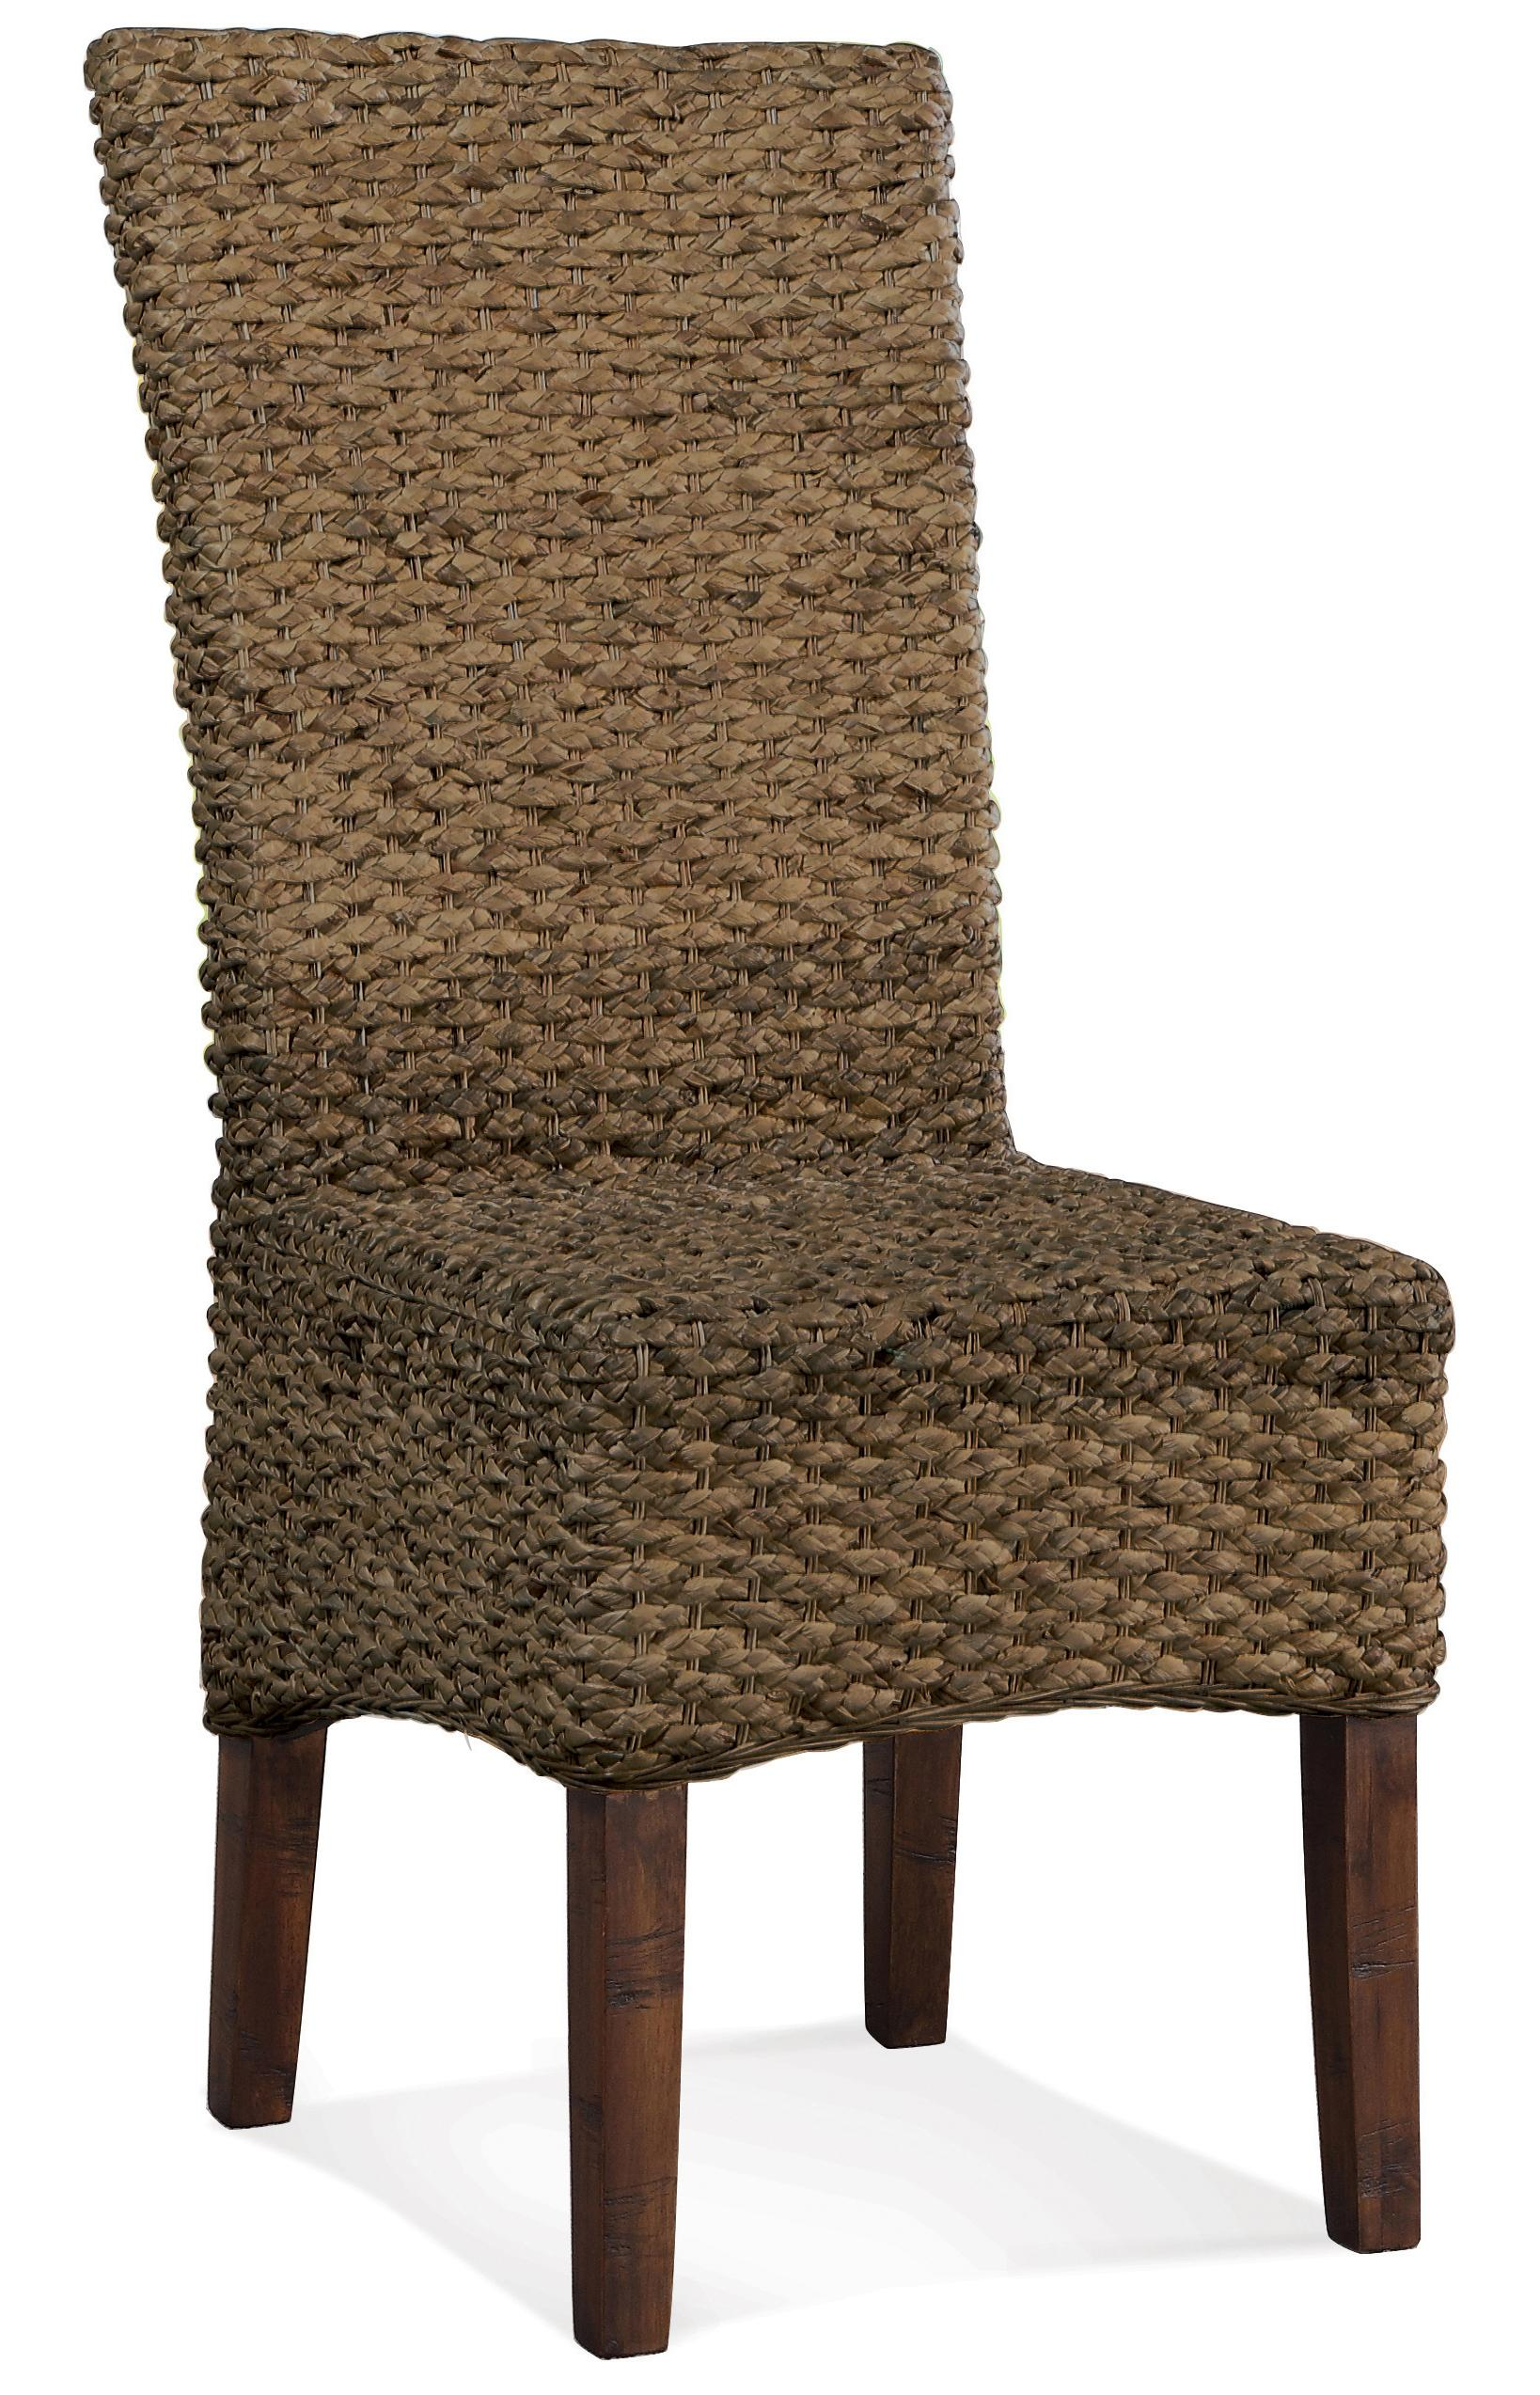 Riverside Furniture Mix N Match Chairs Woven Leaf Side